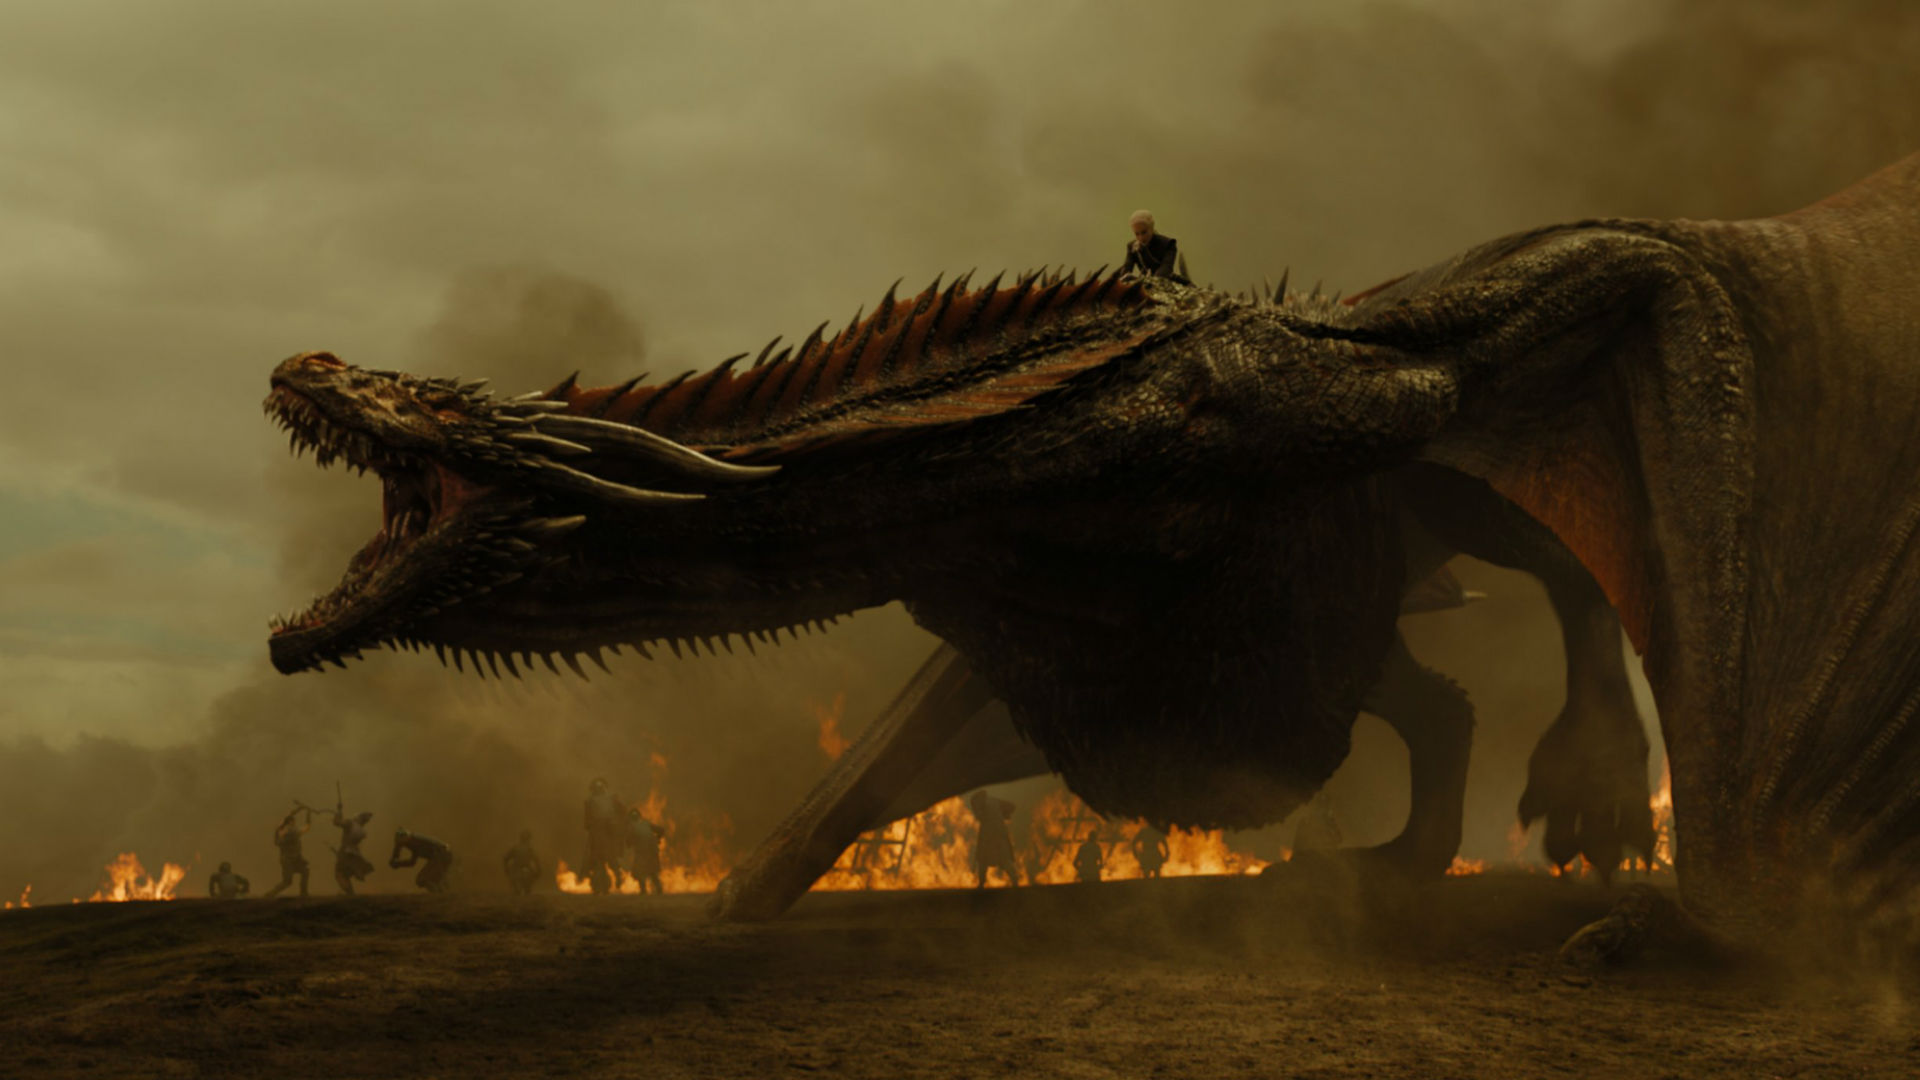 Game of Thrones' House of the Dragon spin-off series gets soft 2022 release date